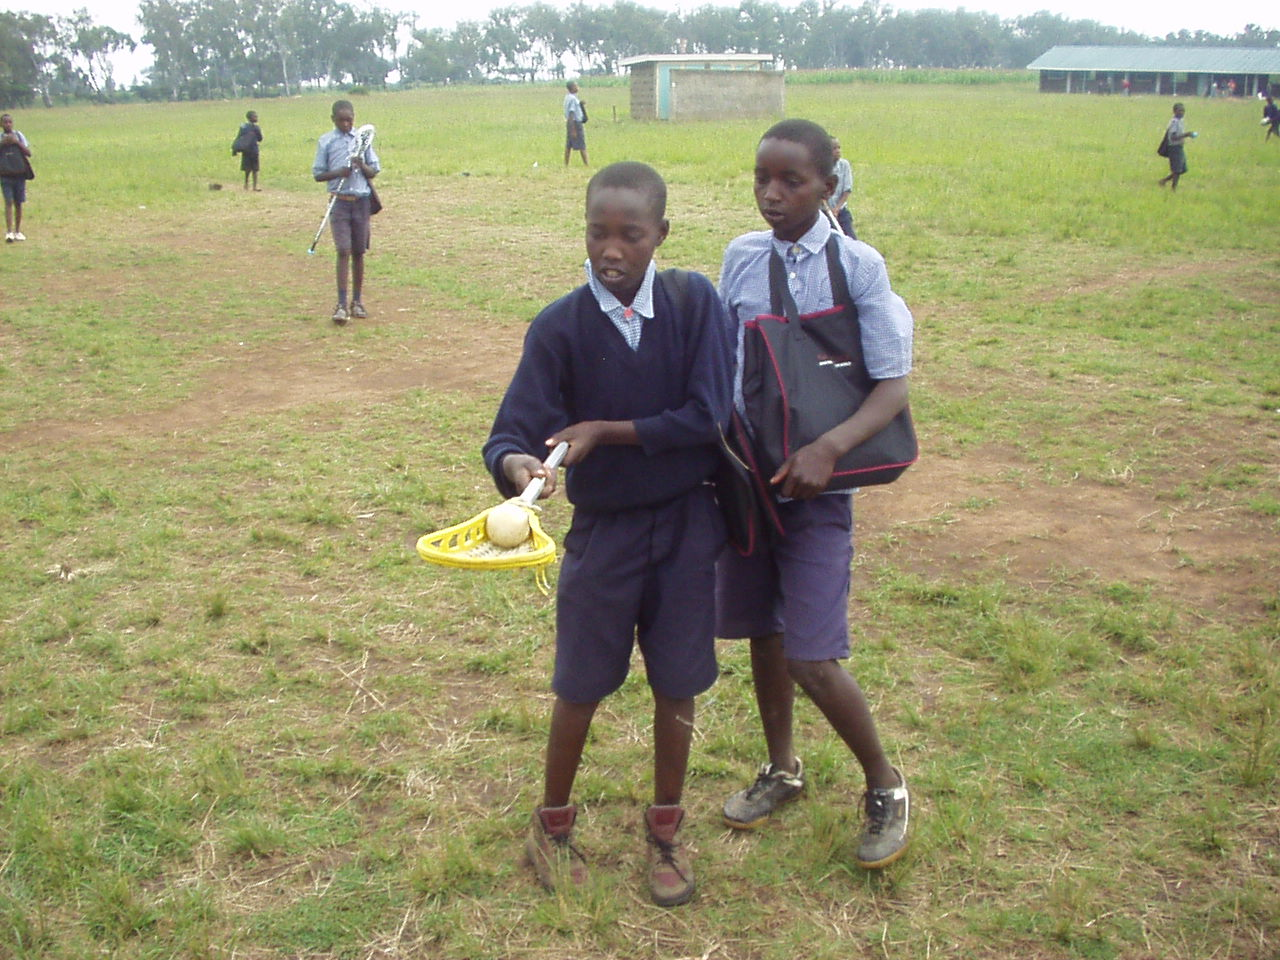 Two Kenyan students looking at a lacrosse stick donated by World teacher aid